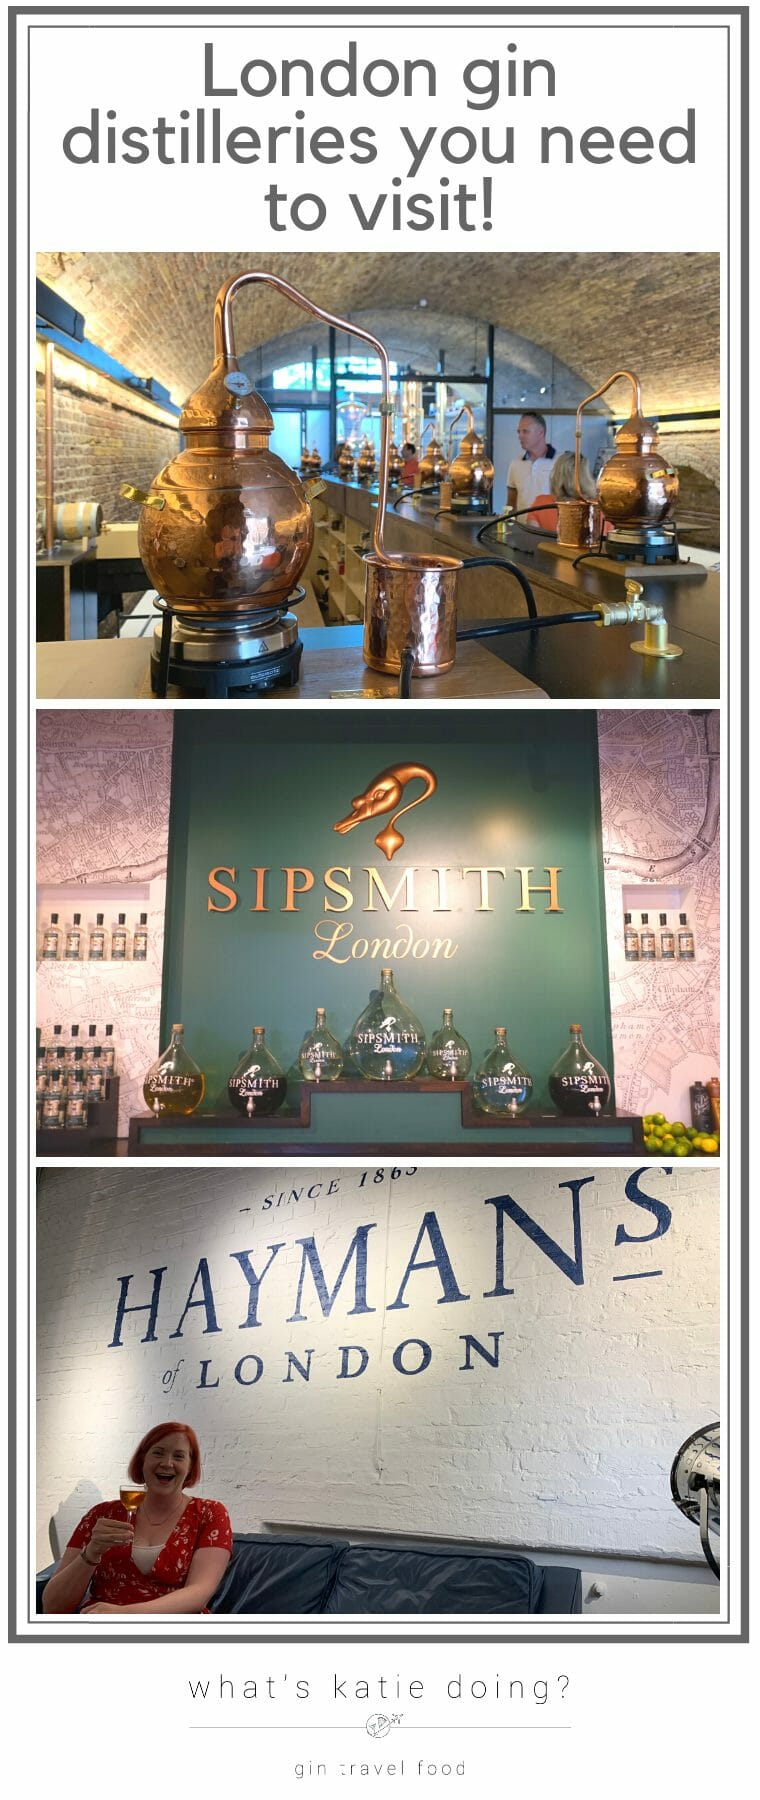 London gin distilleries you need to visit